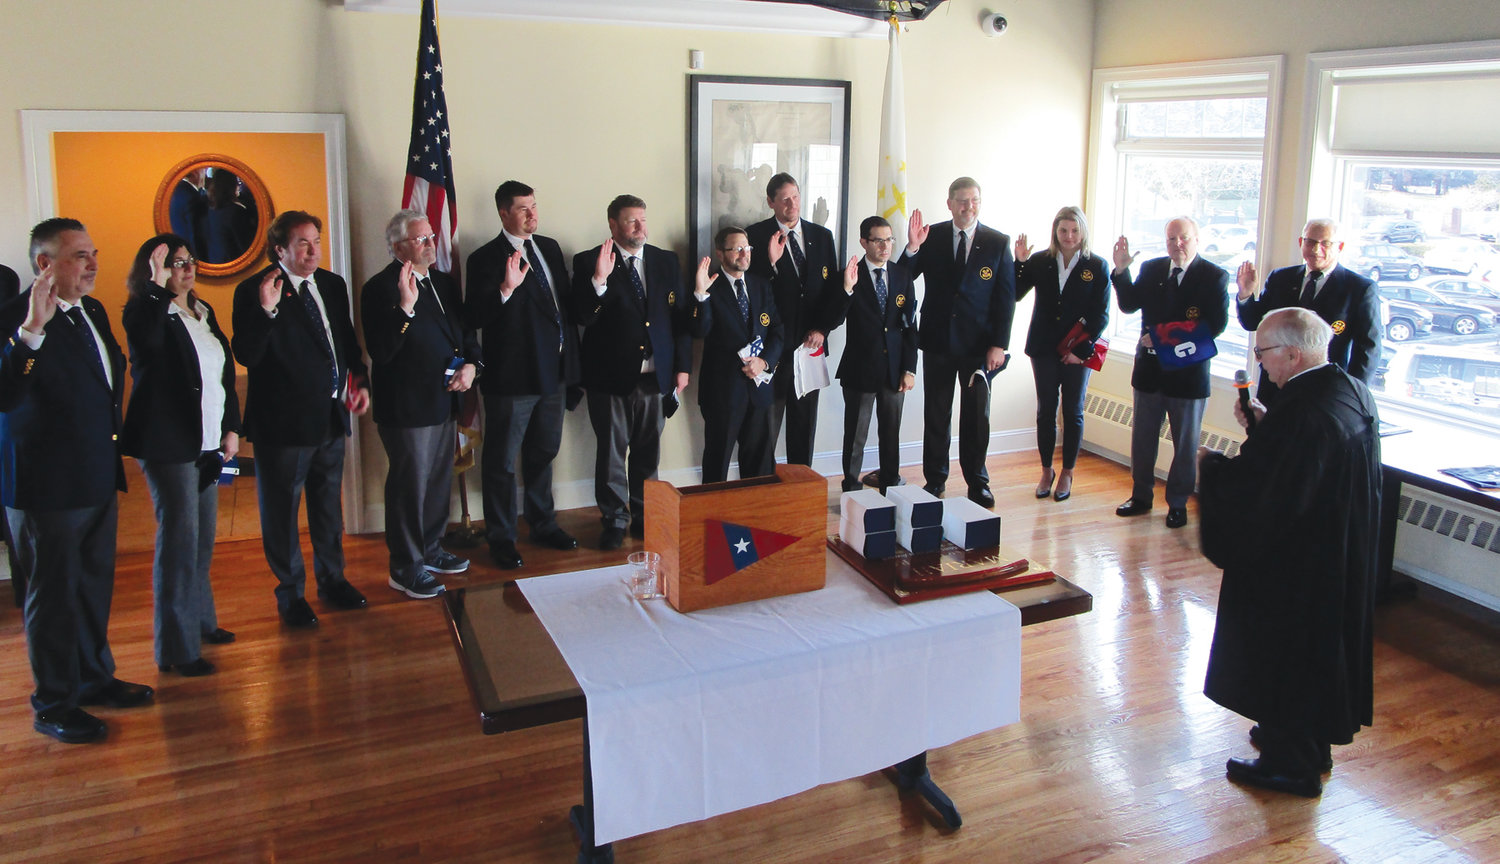 NEW SLATE: The 2020 officers and directors for the Rhode Island Yacht Club are sworn in during last week's ceremony.